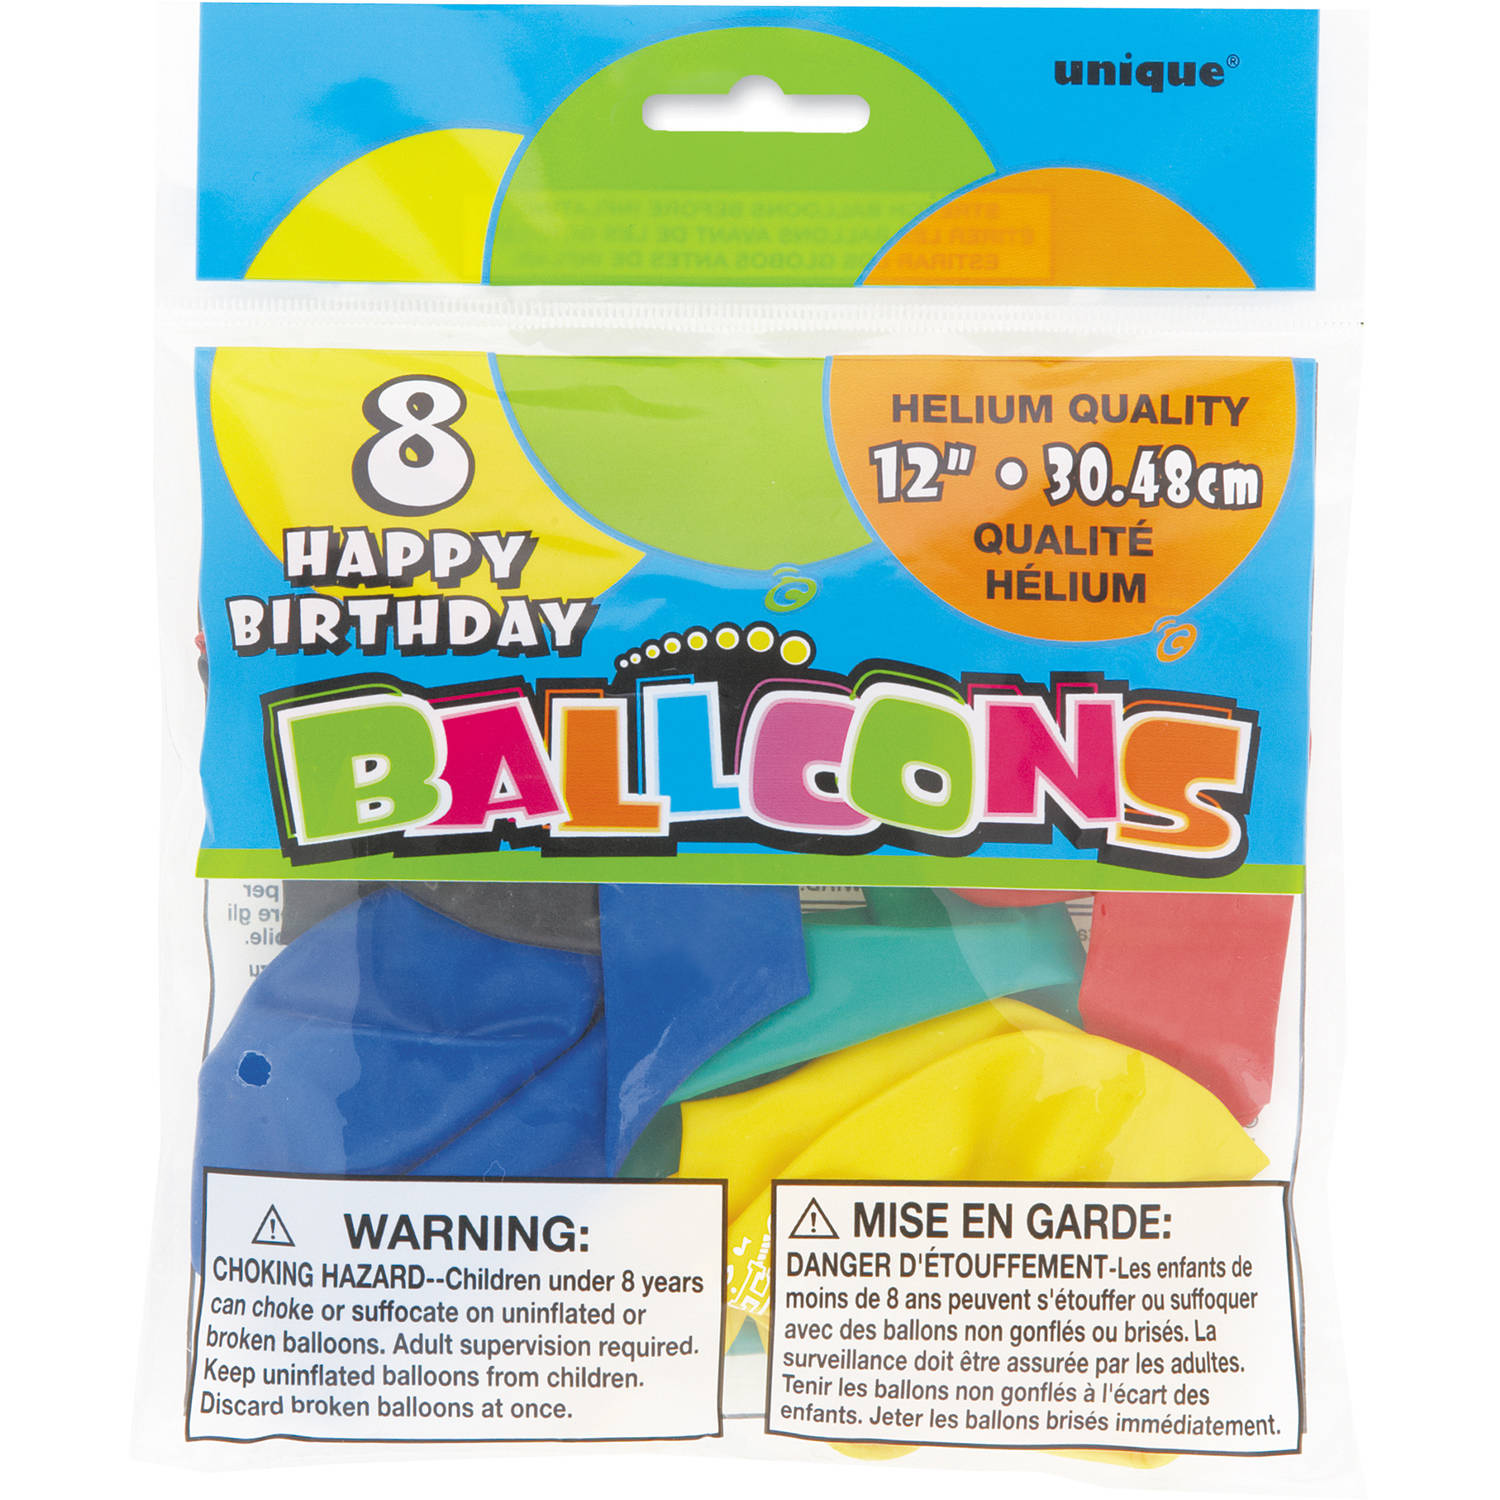 happy birthday balloons walmart ; 238d383f-e5f8-4470-8c53-3dba7c66dff5_1